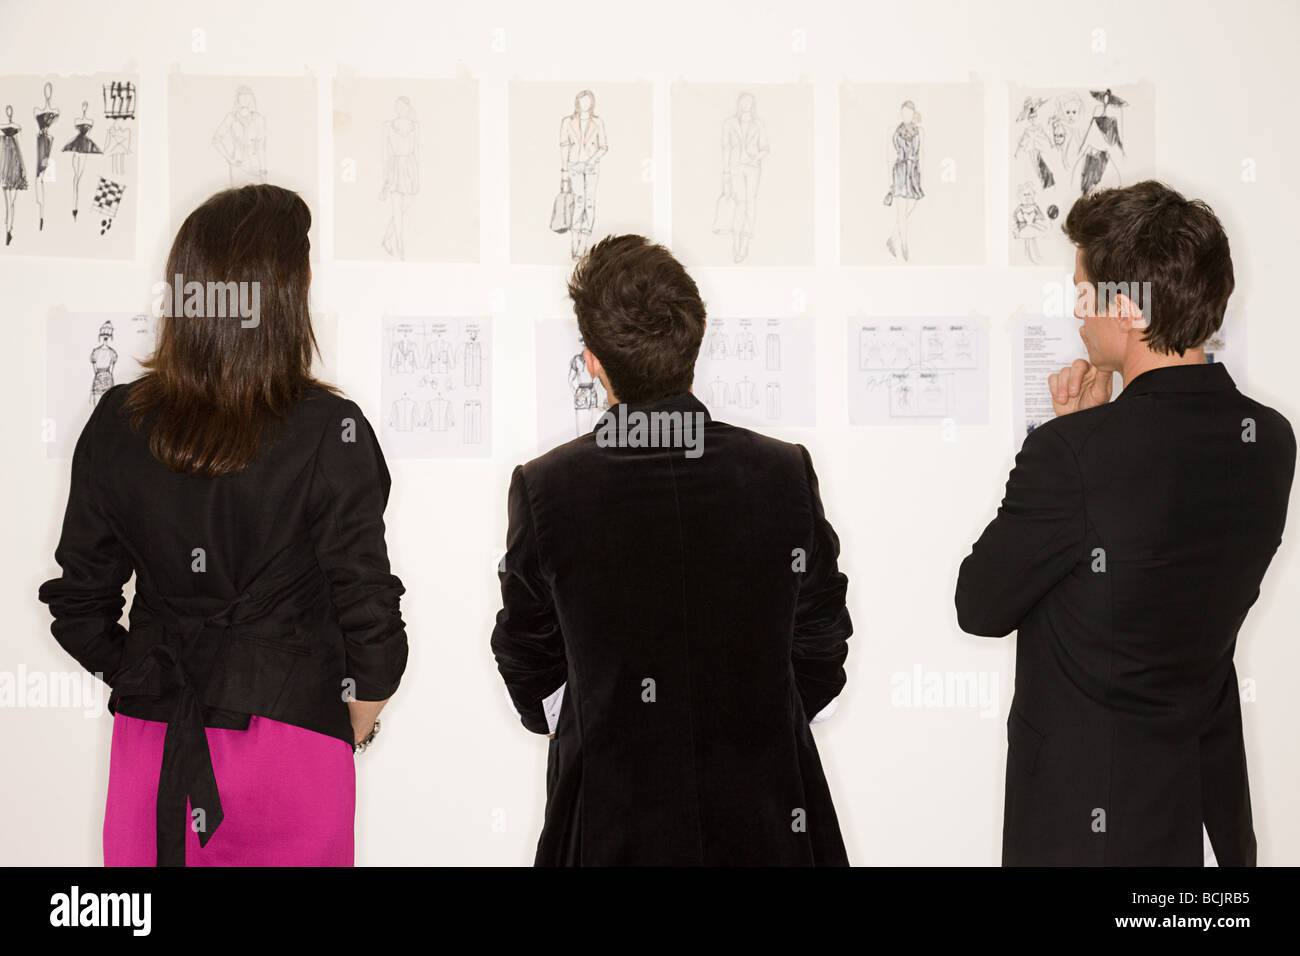 Fashion designers looking at designs - Stock Image